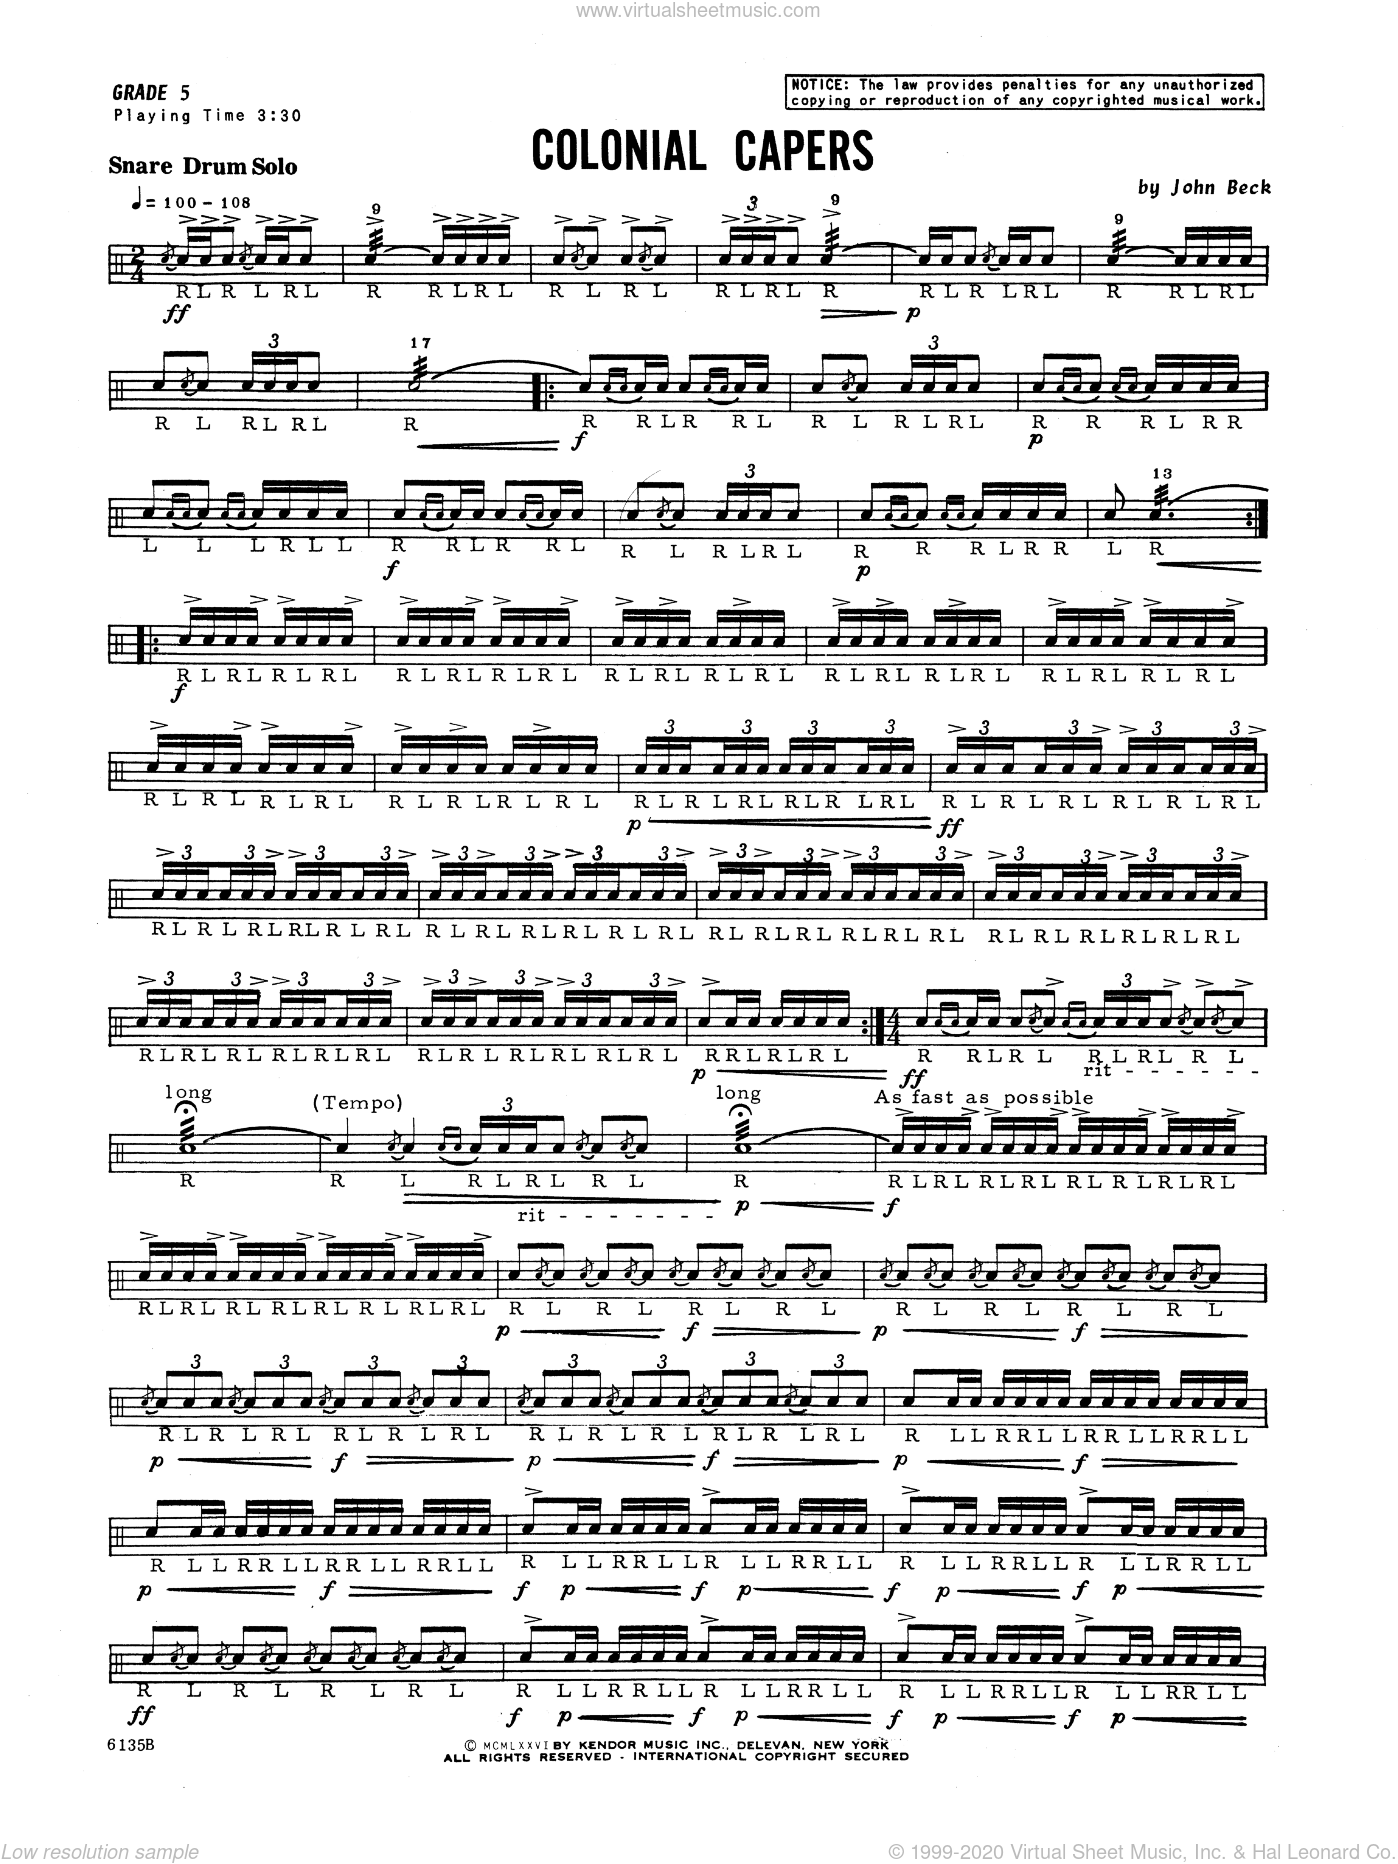 Colonial Capers sheet music for percussions by John H. Beck, classical score, intermediate skill level